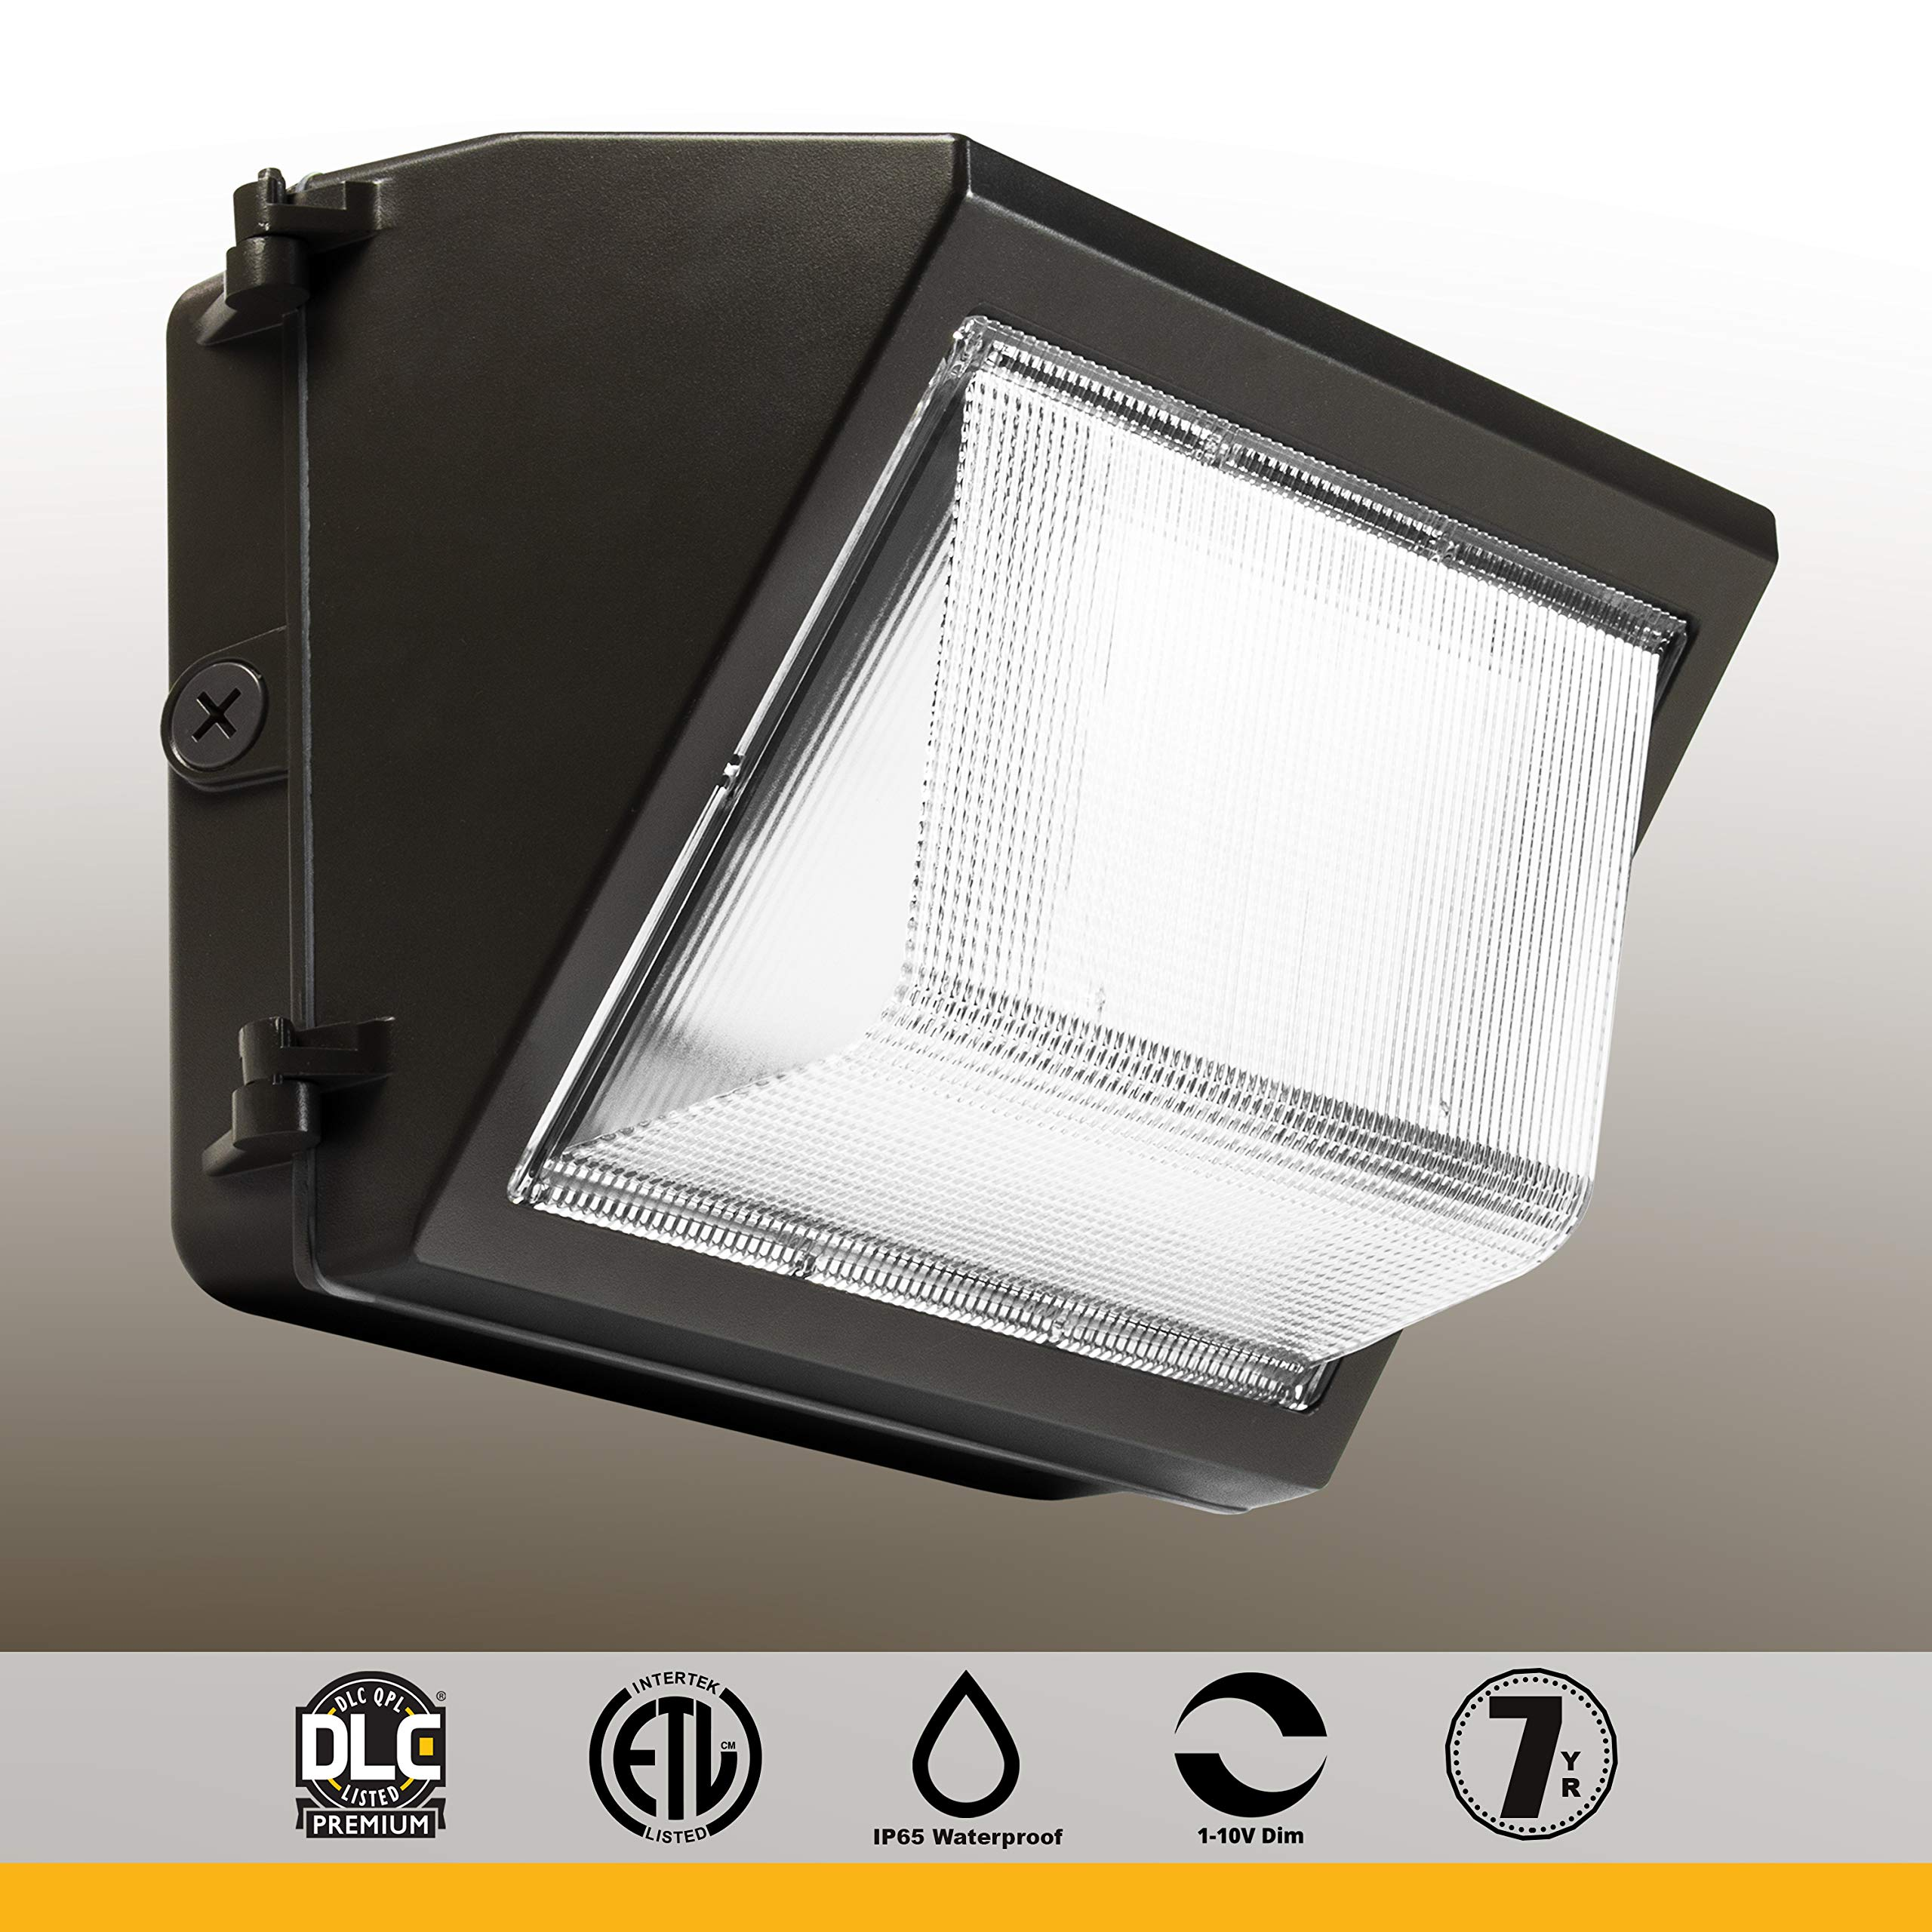 LED Wall Pack, Glass Refractor, 1-10V dimming, 5000K, 100-277VAC DLC Premium Product, 28W, 5000K, 3640 lm, Without Photocell